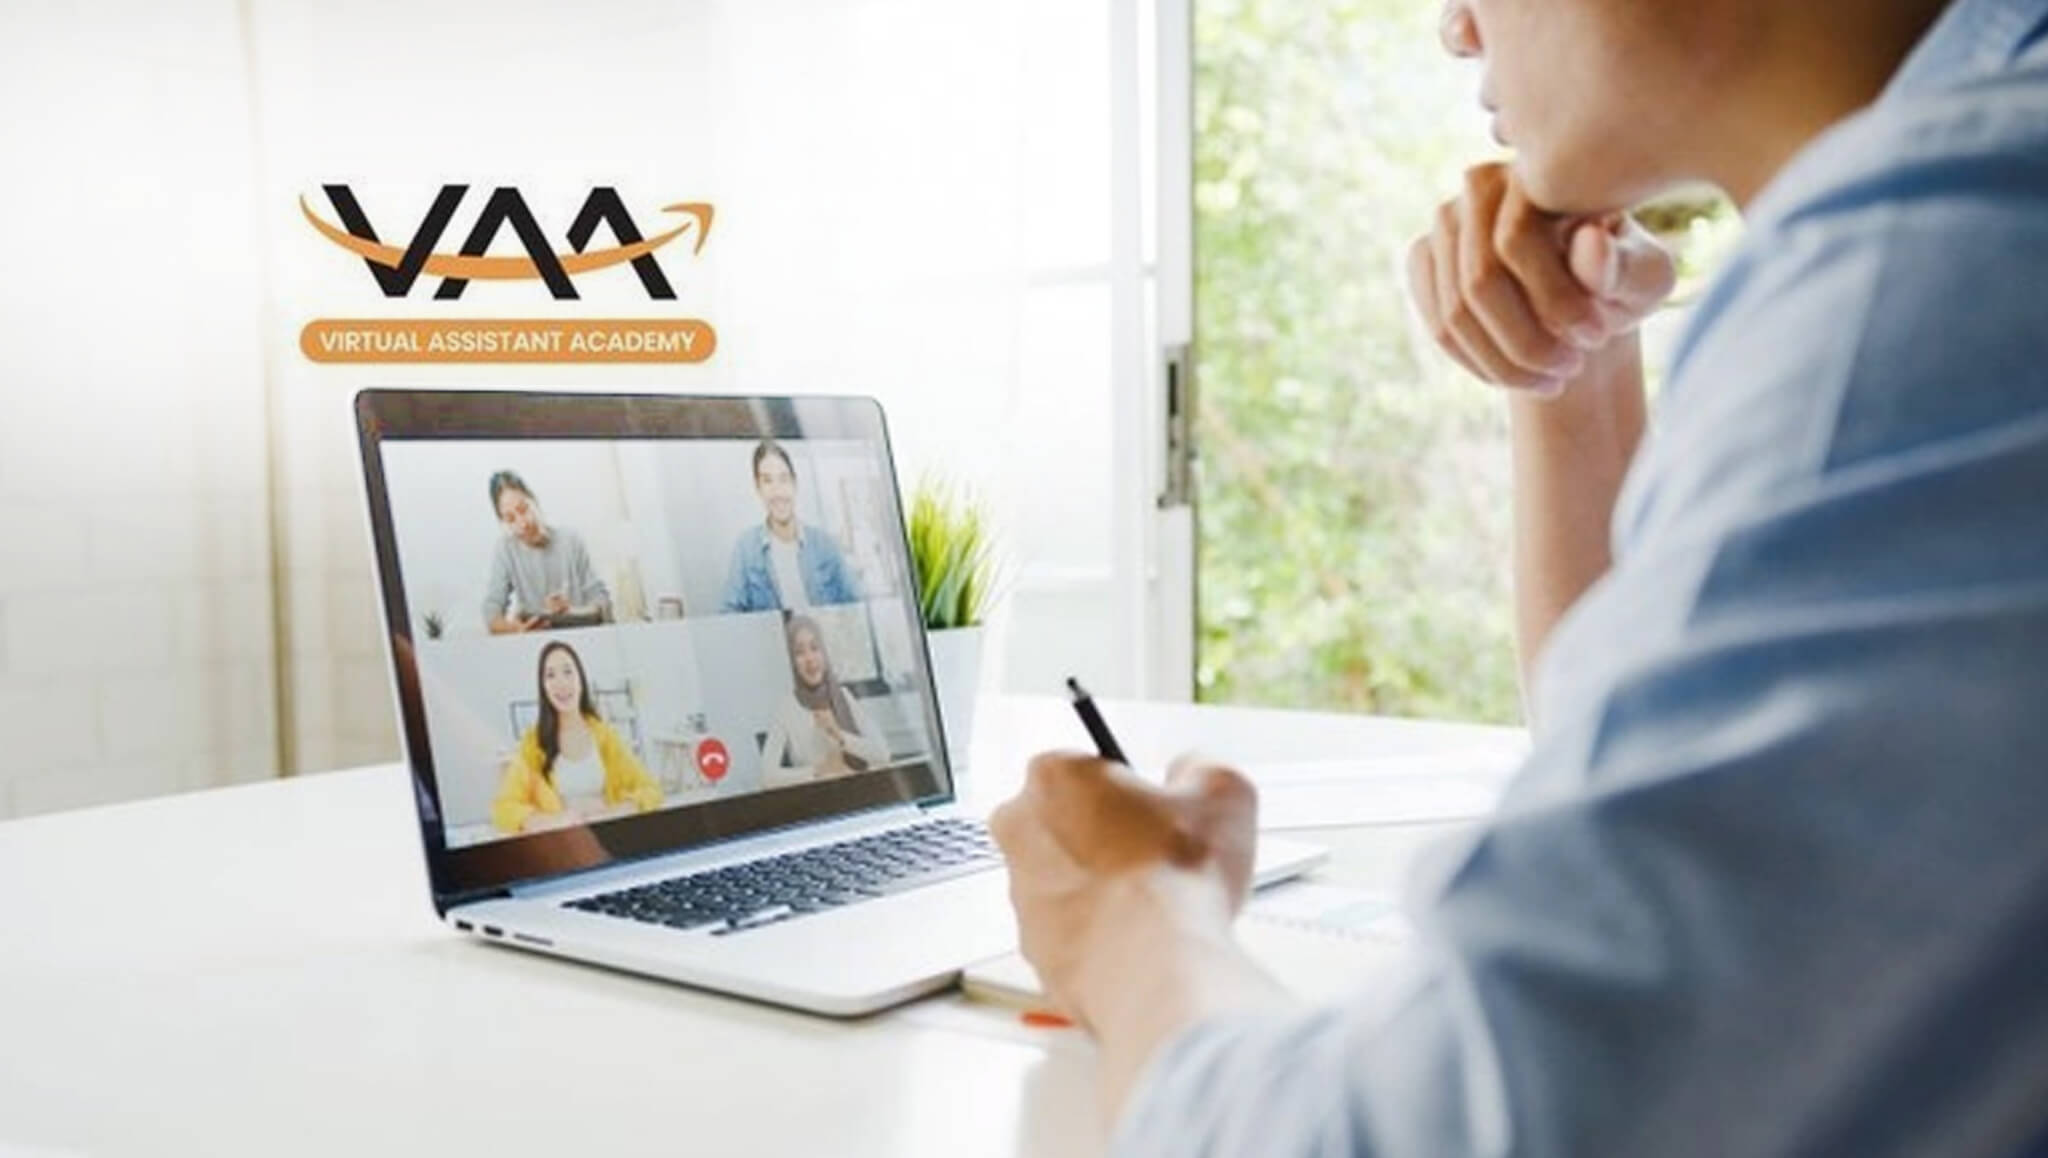 VAA Philippines launches VA-trained chatbots to help Amazon sellers